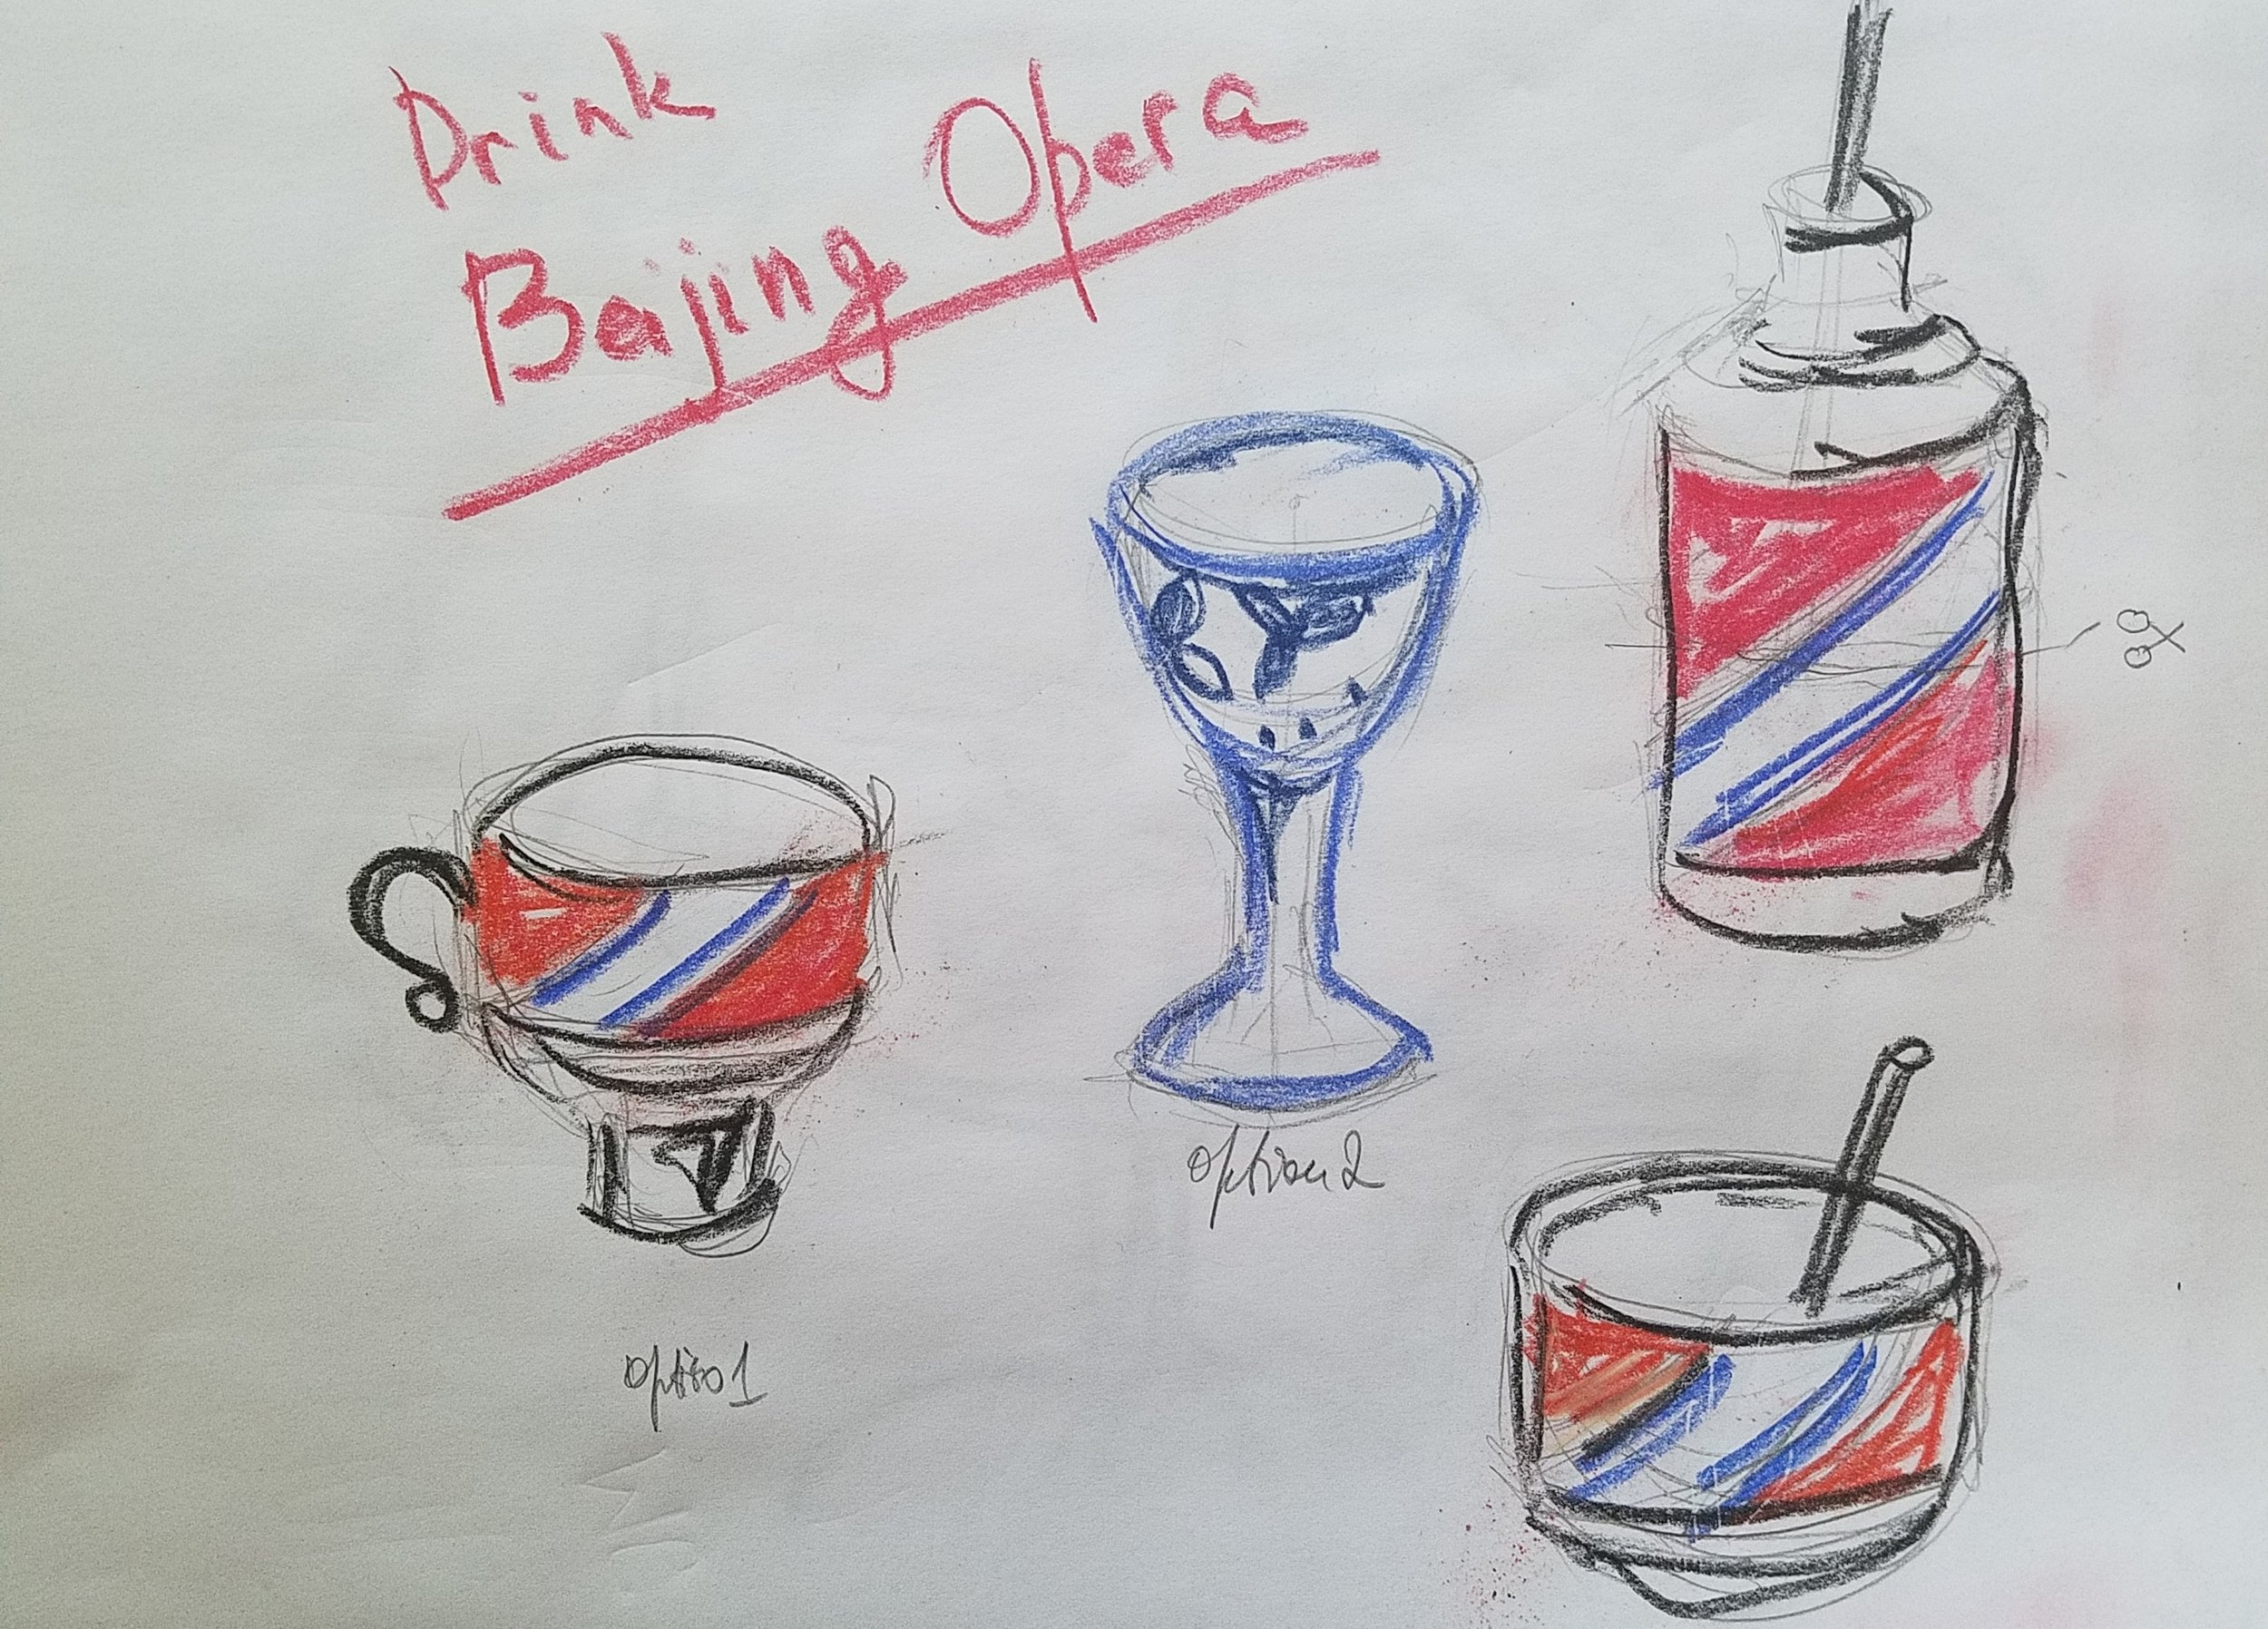 Sketches for the Beijing Opera cocktail